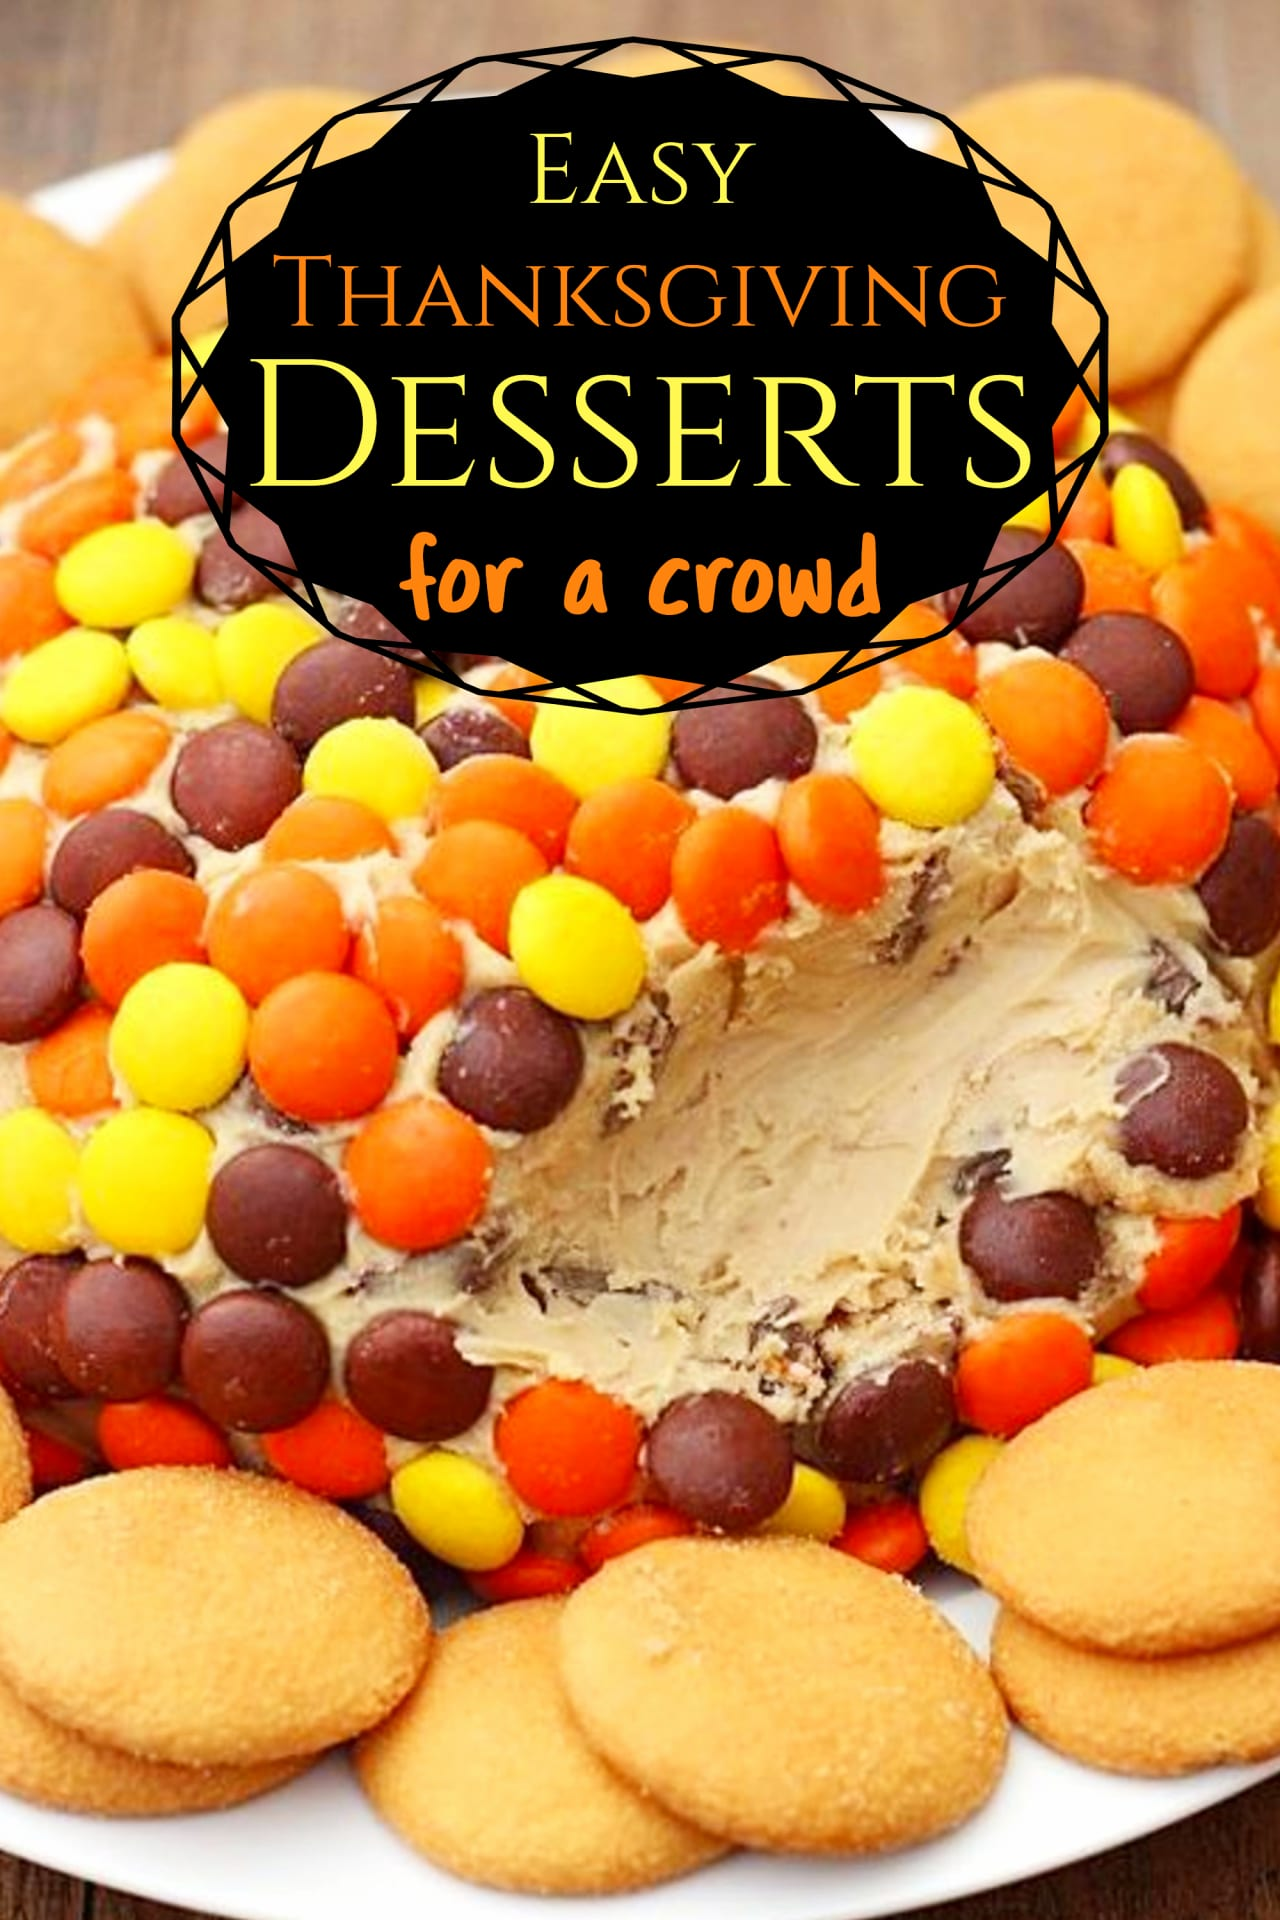 Easy Thanksgiving Desserts For a Crwod - Simple and UNIQUE Thanksgiving Desserts Recipes for your large group or family get-together or pot luck